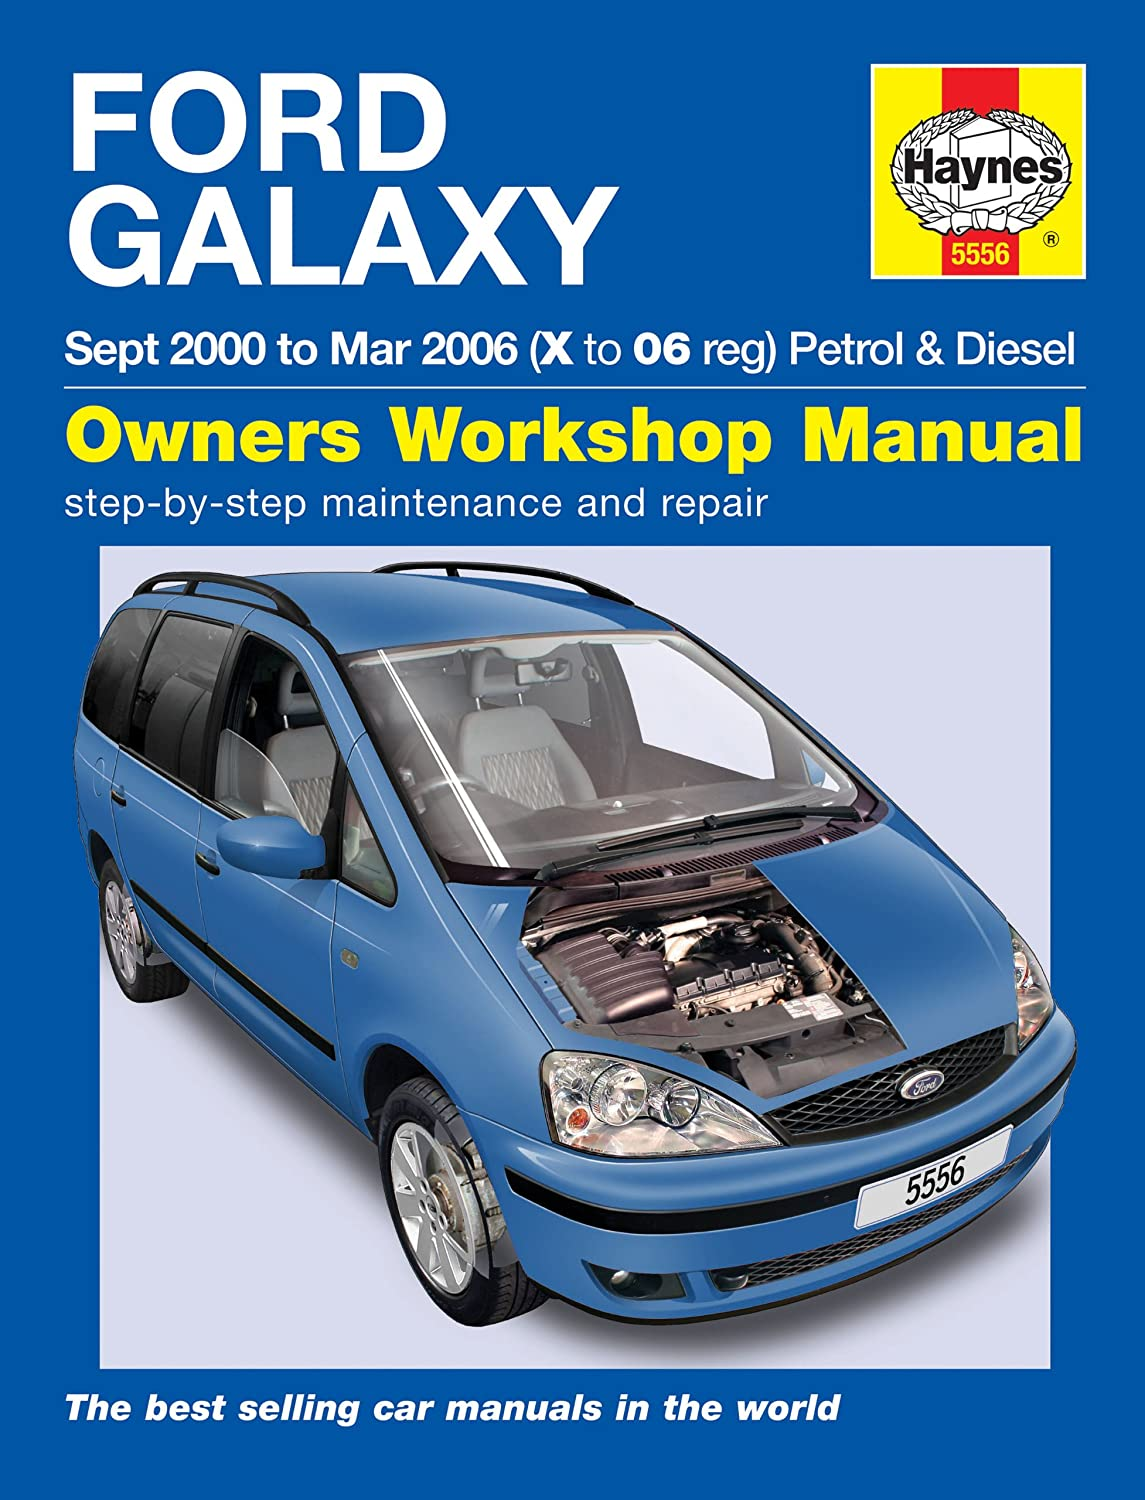 Ford Galaxy Repair Manual Haynes Manual Service Manual Workshop Manual 2000-2006:  Amazon.co.uk: Car & Motorbike